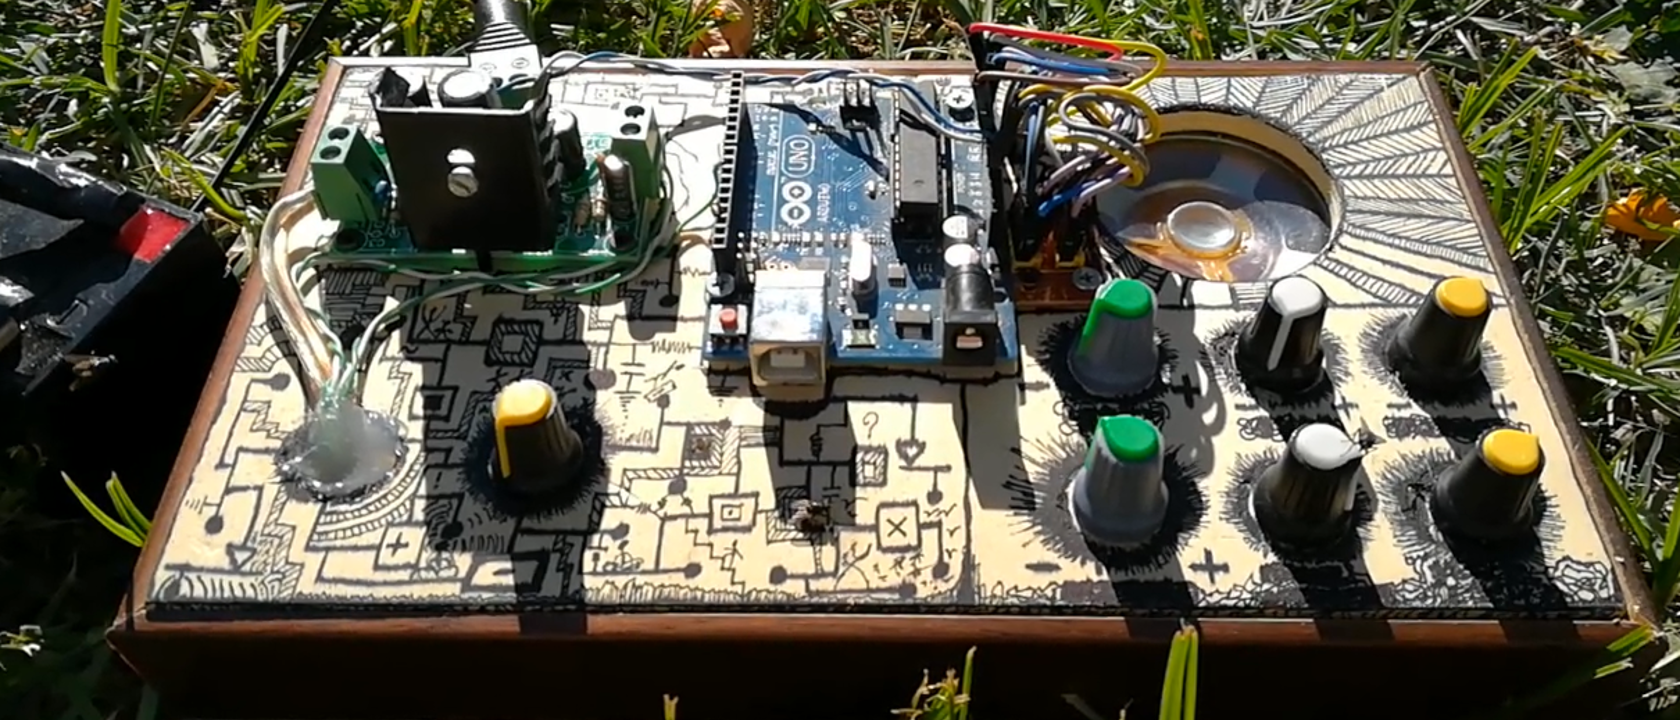 AutoSynth: DIY Arduino synth